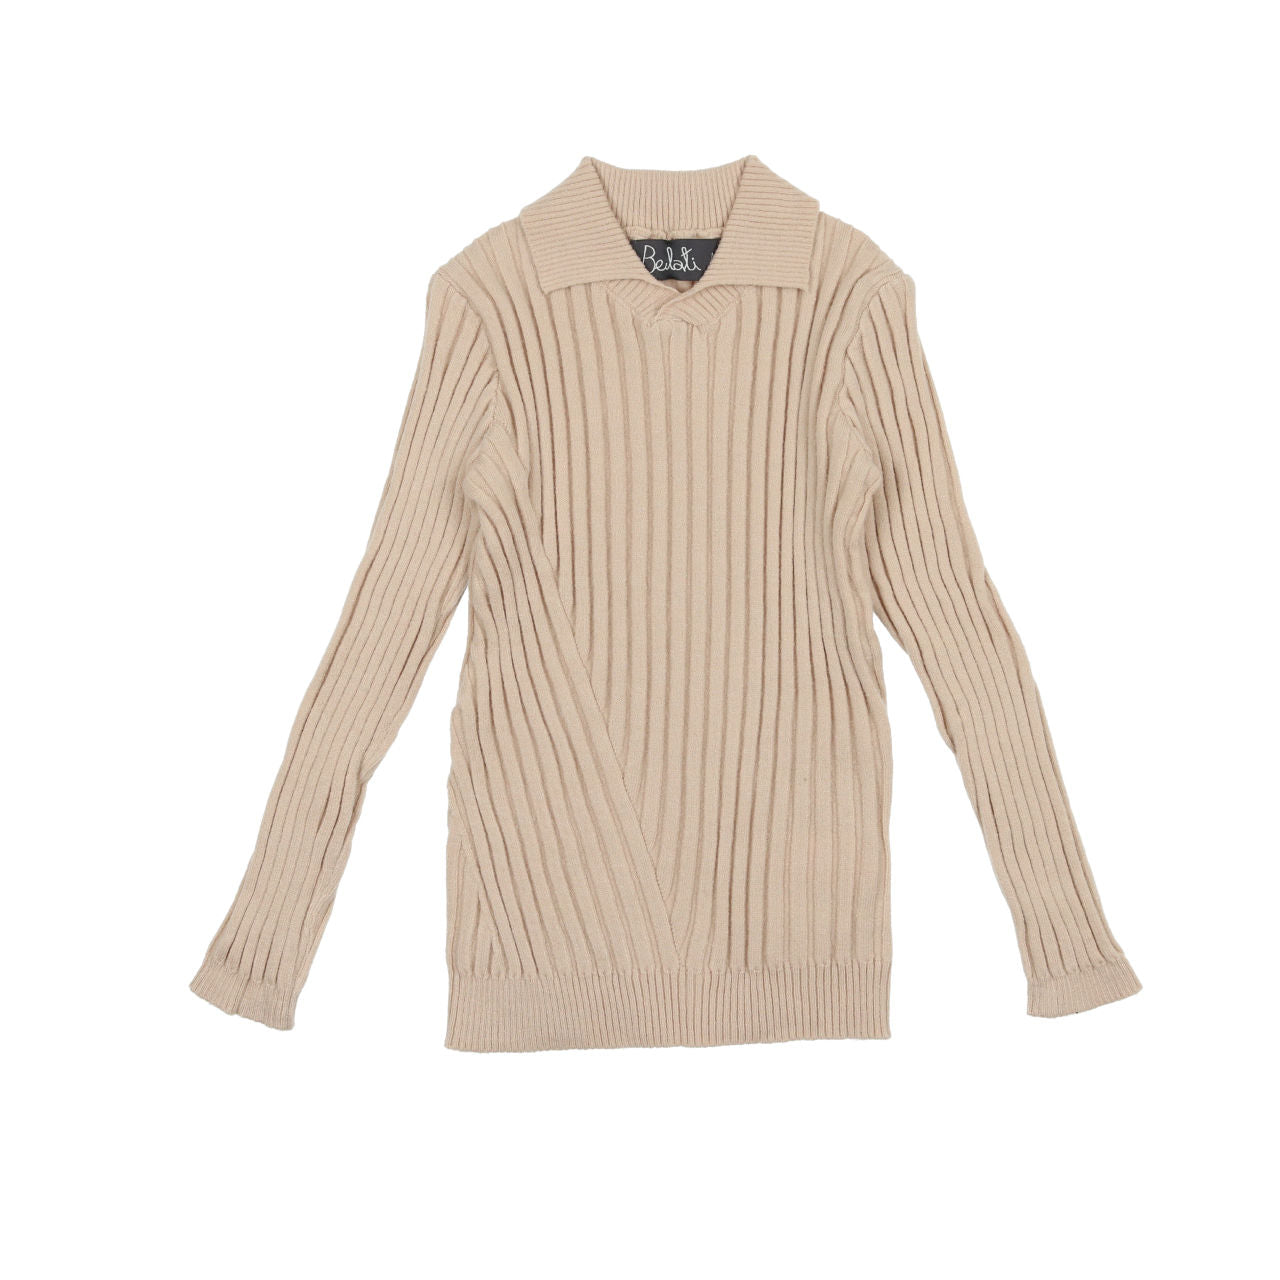 Belati Vanilla Multi Directional Ribbed Sweater